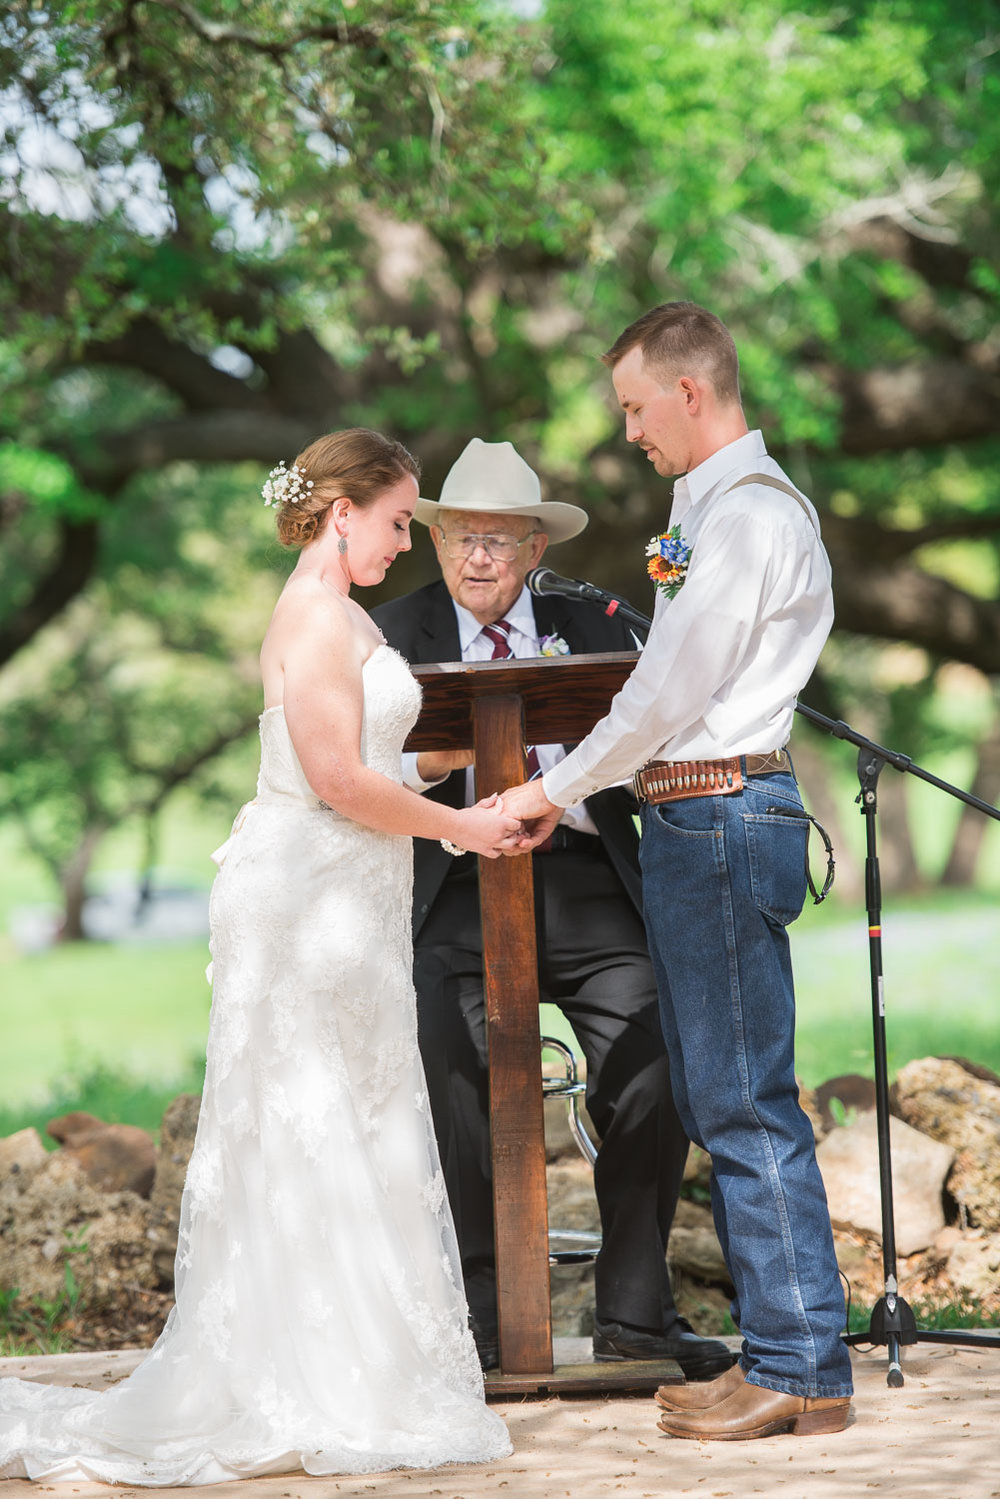 53 Bride and groom praying together at texas wedding.jpg